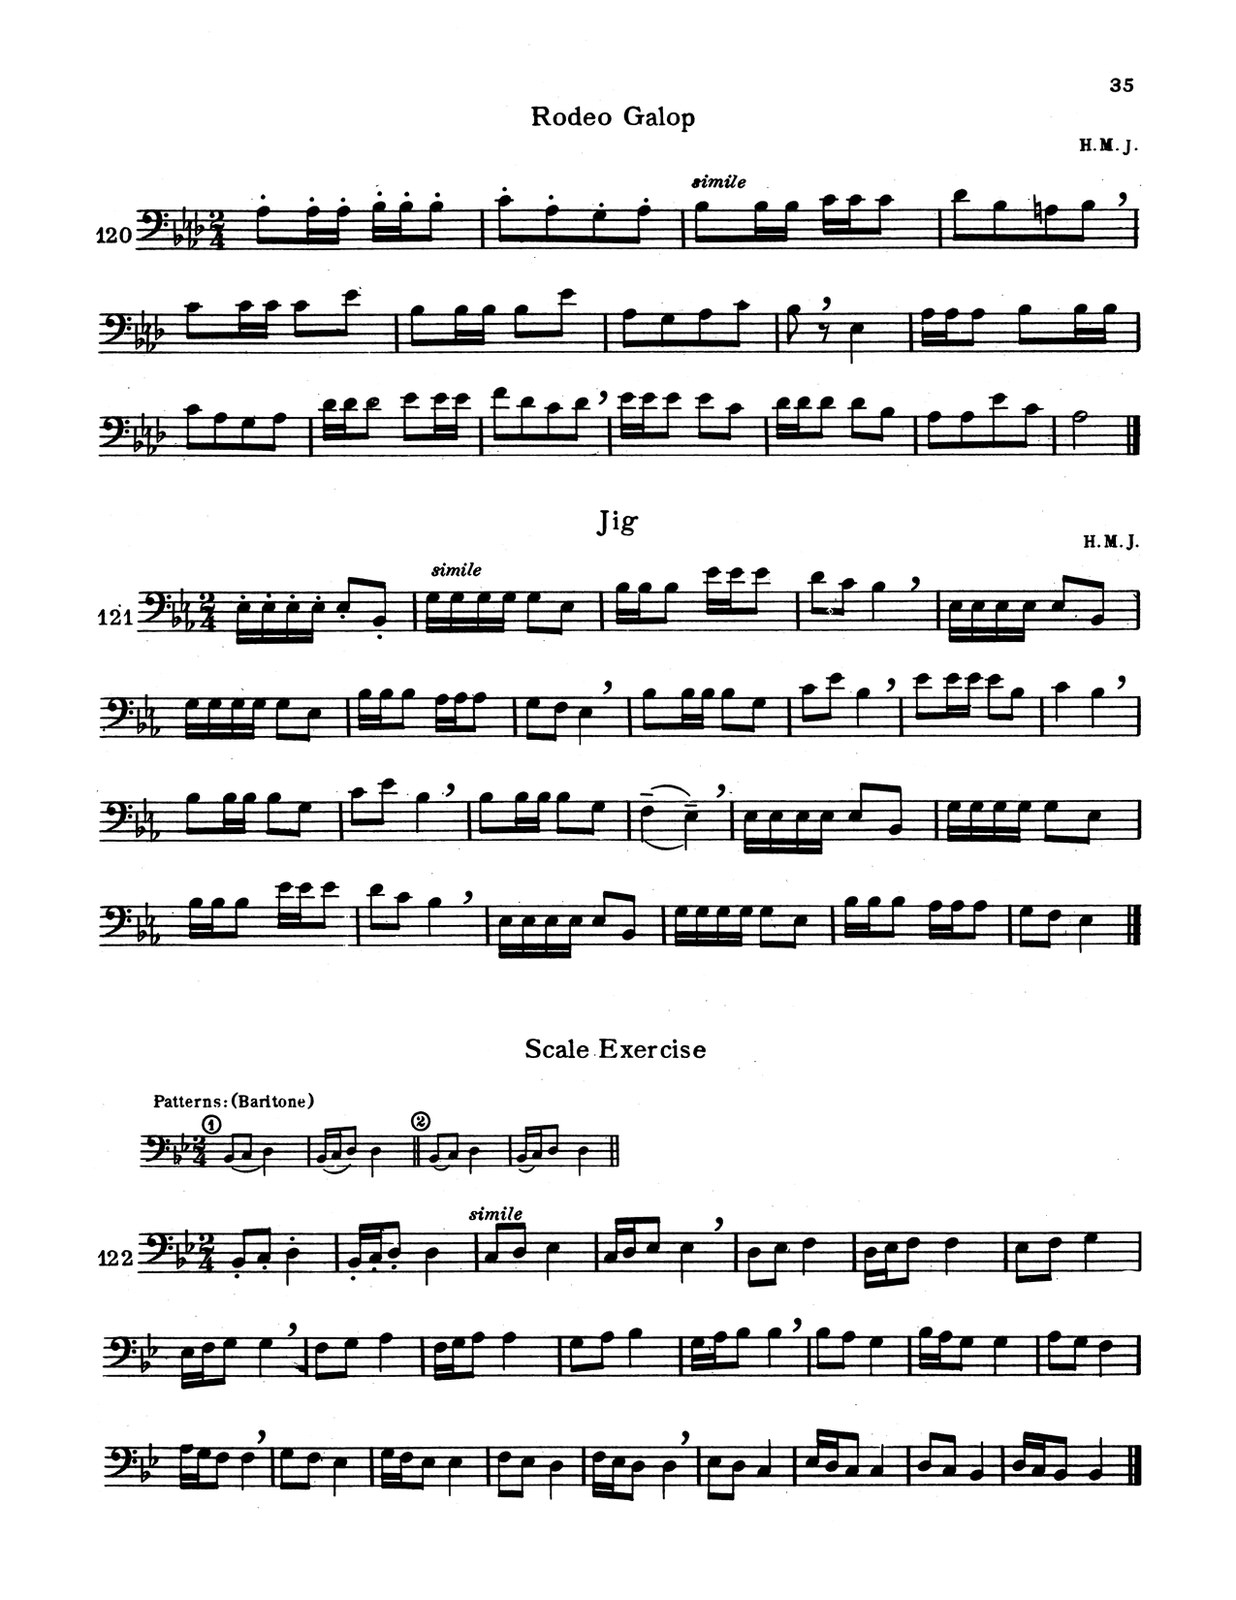 Johnson, Harold M., Aeolian Method for Trombone-p35